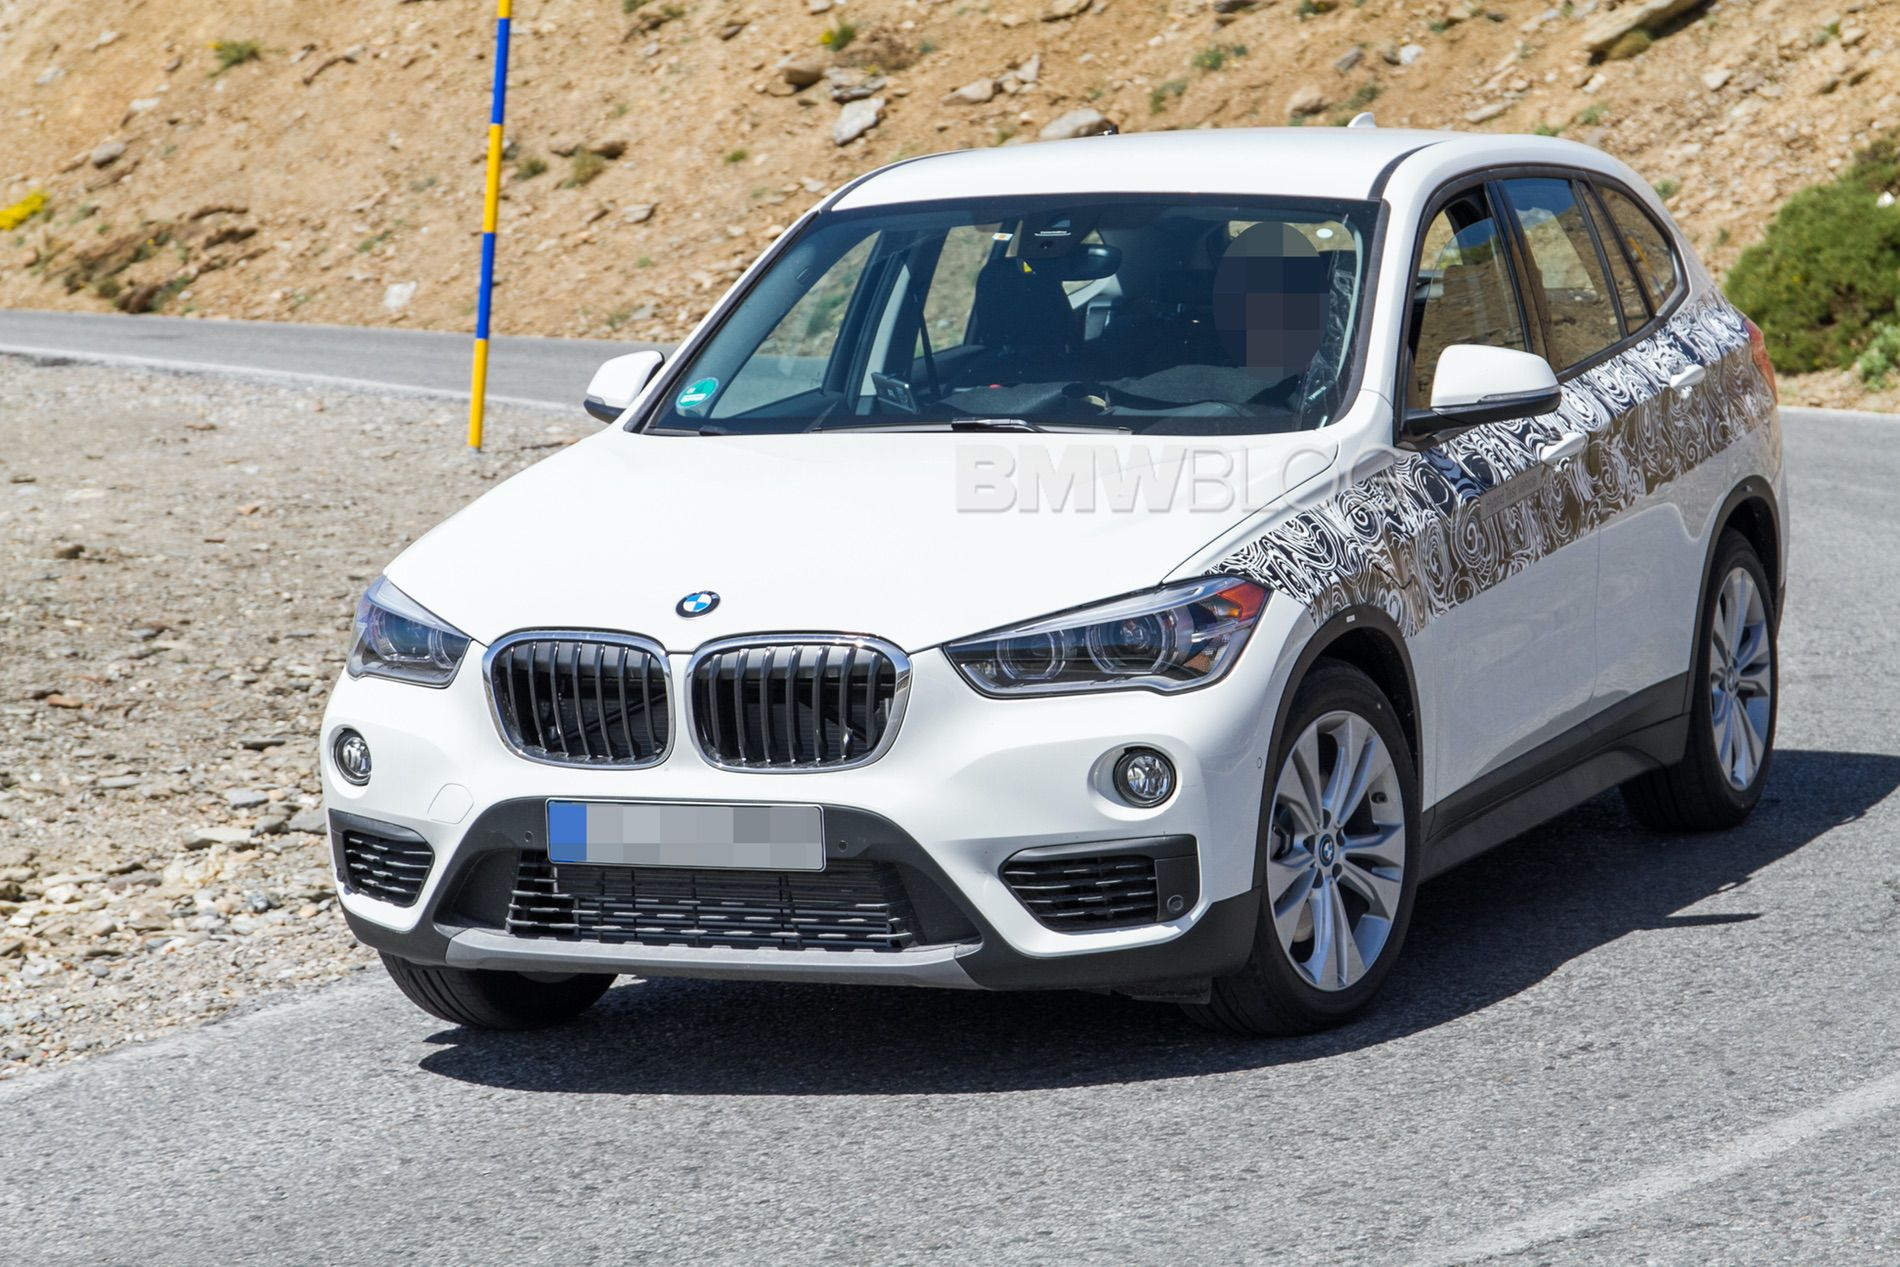 BMW X1 hybrid spy photos 03